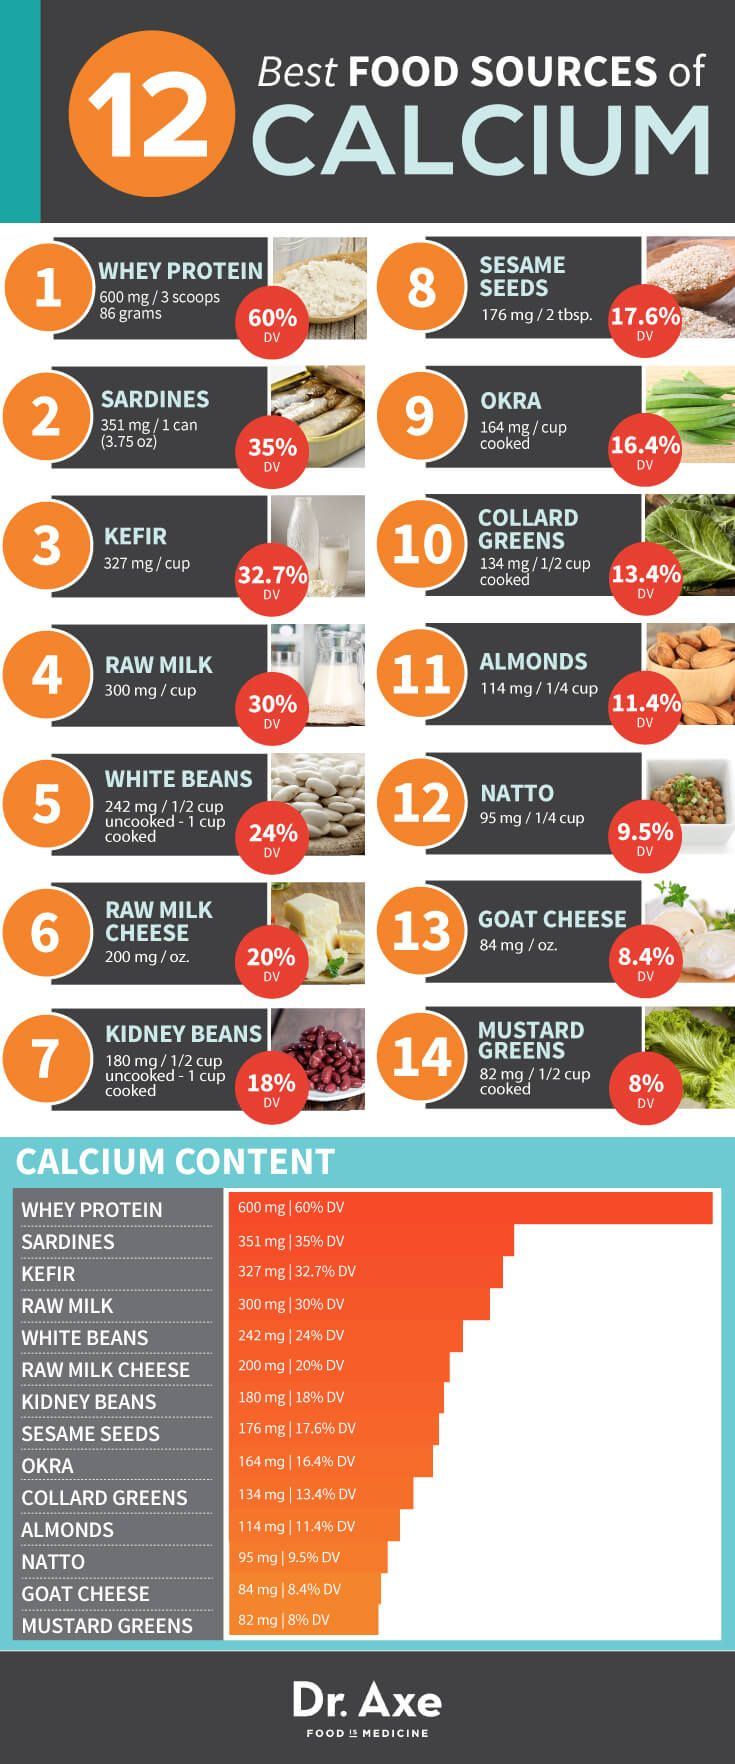 Calcium Deficiency: Are Supplements the Answer?